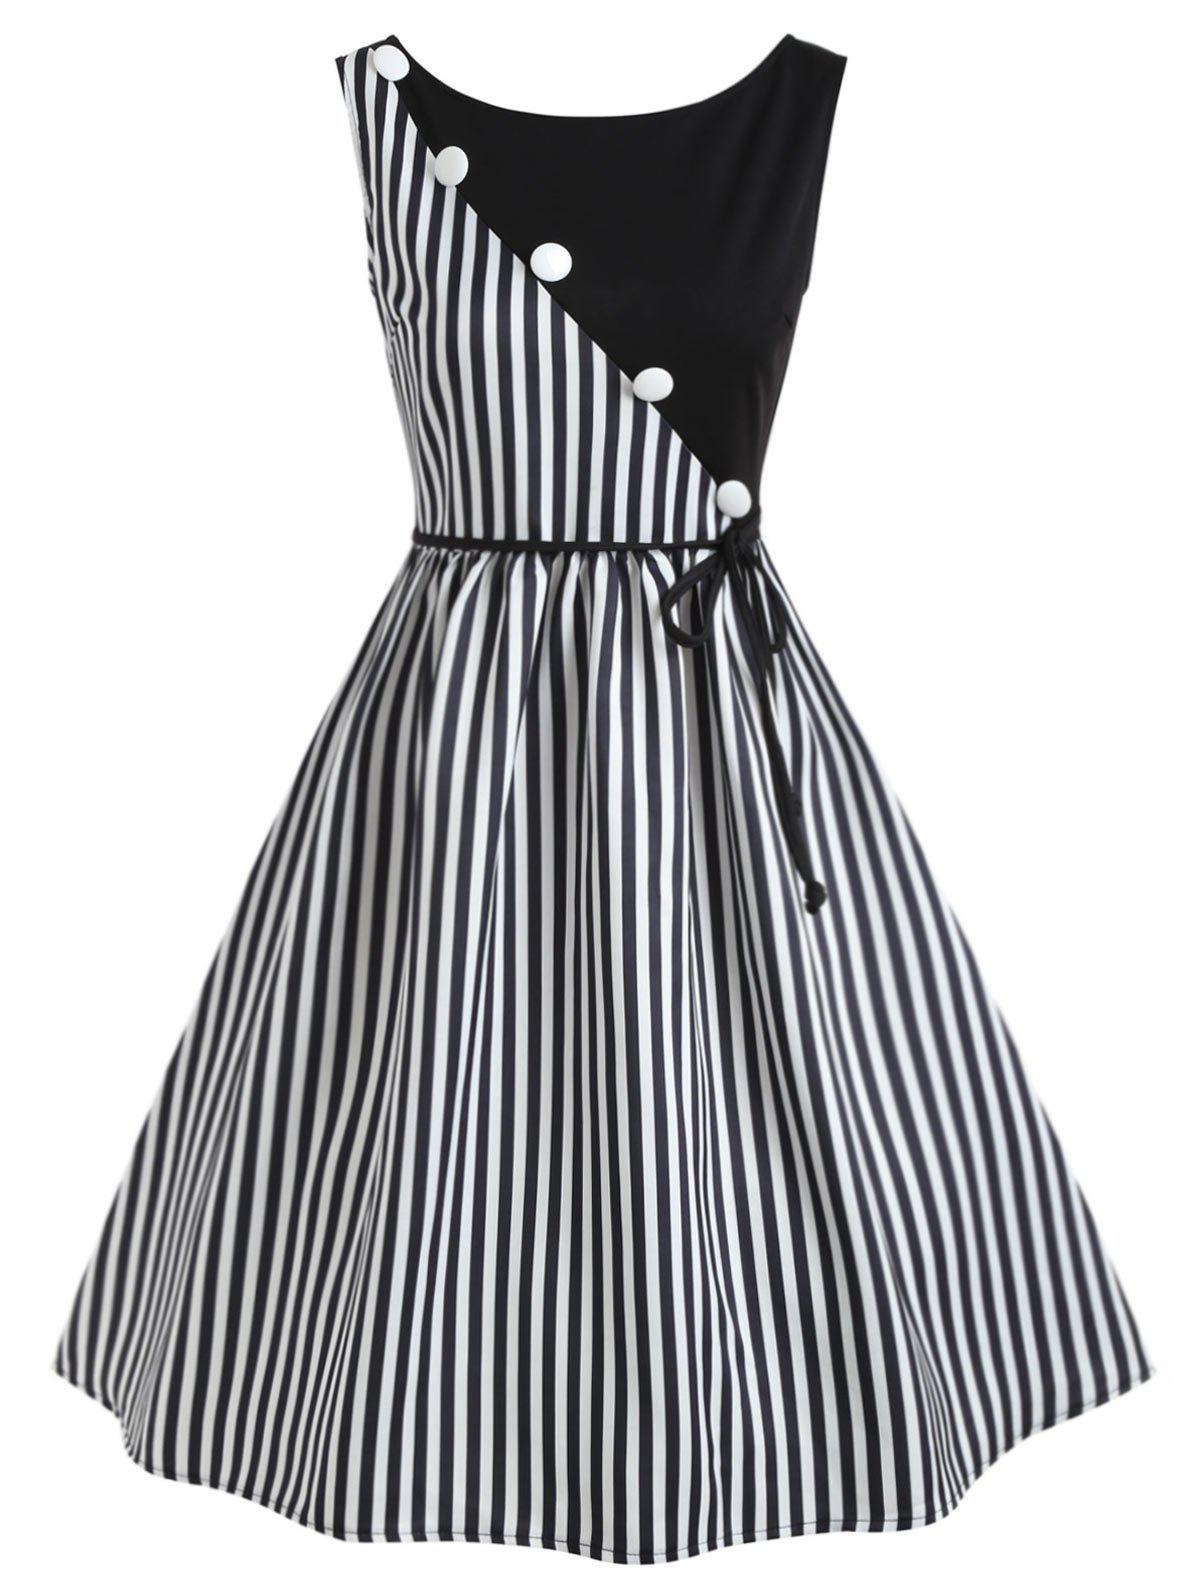 Store Vertical Stripe Sleeveless Casual Dress